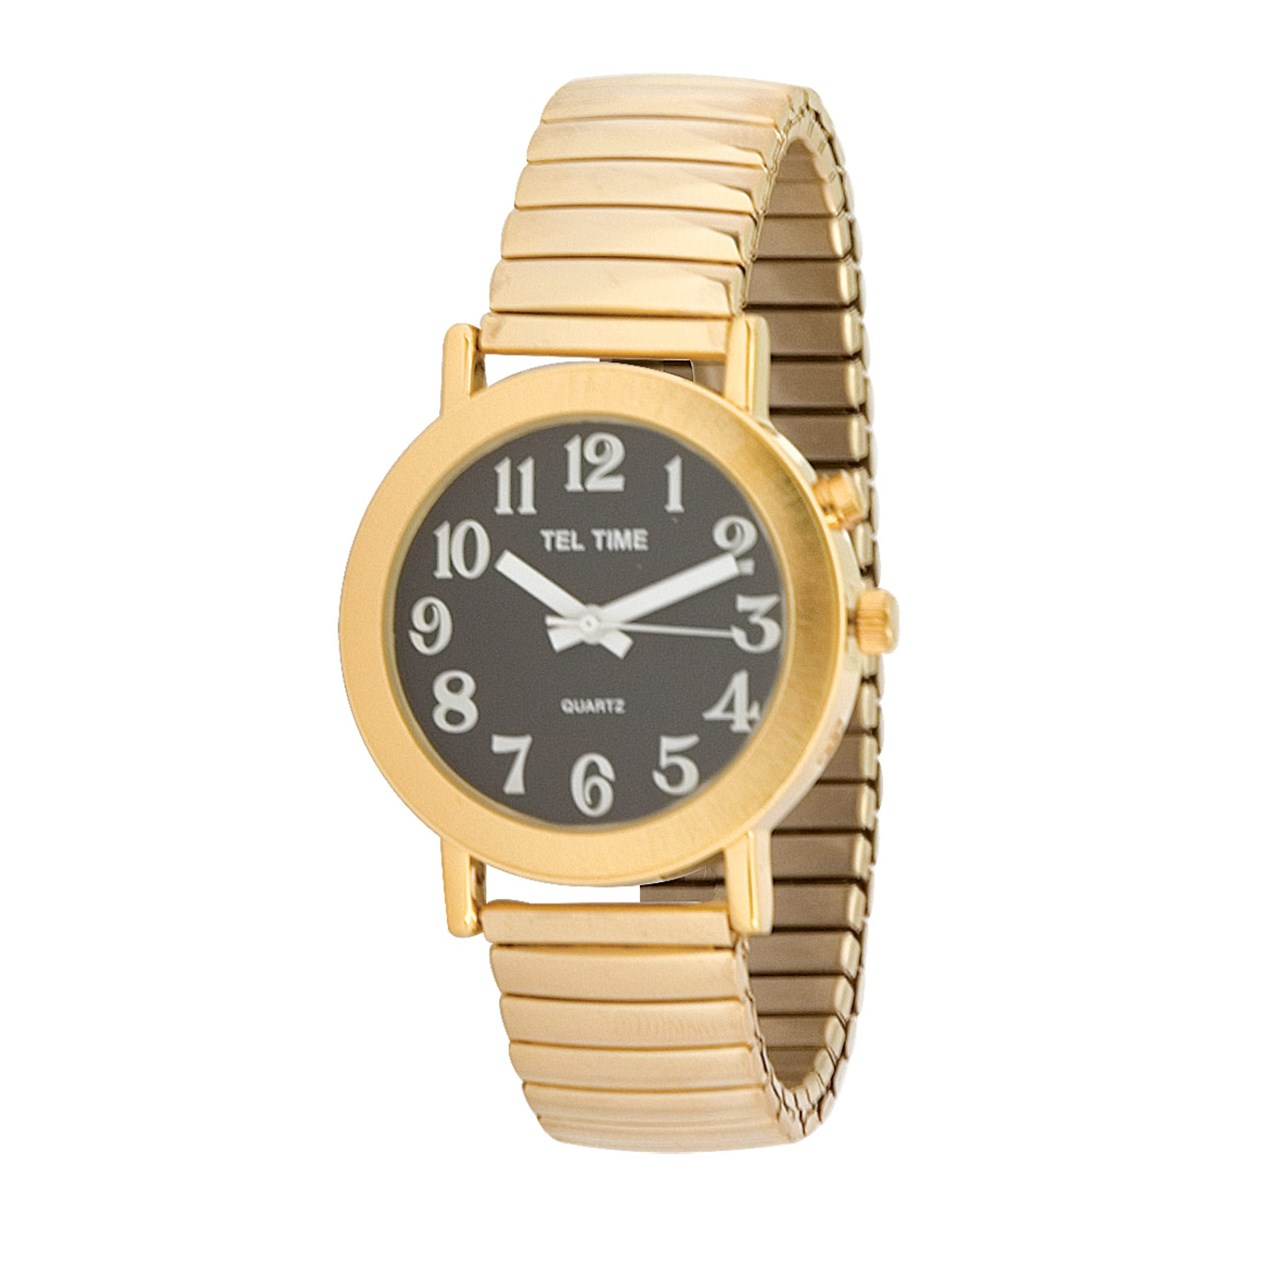 maxiaids tel time mens gold tone expansion one button talking tel time mens gold tone expansion one button talking watch black face